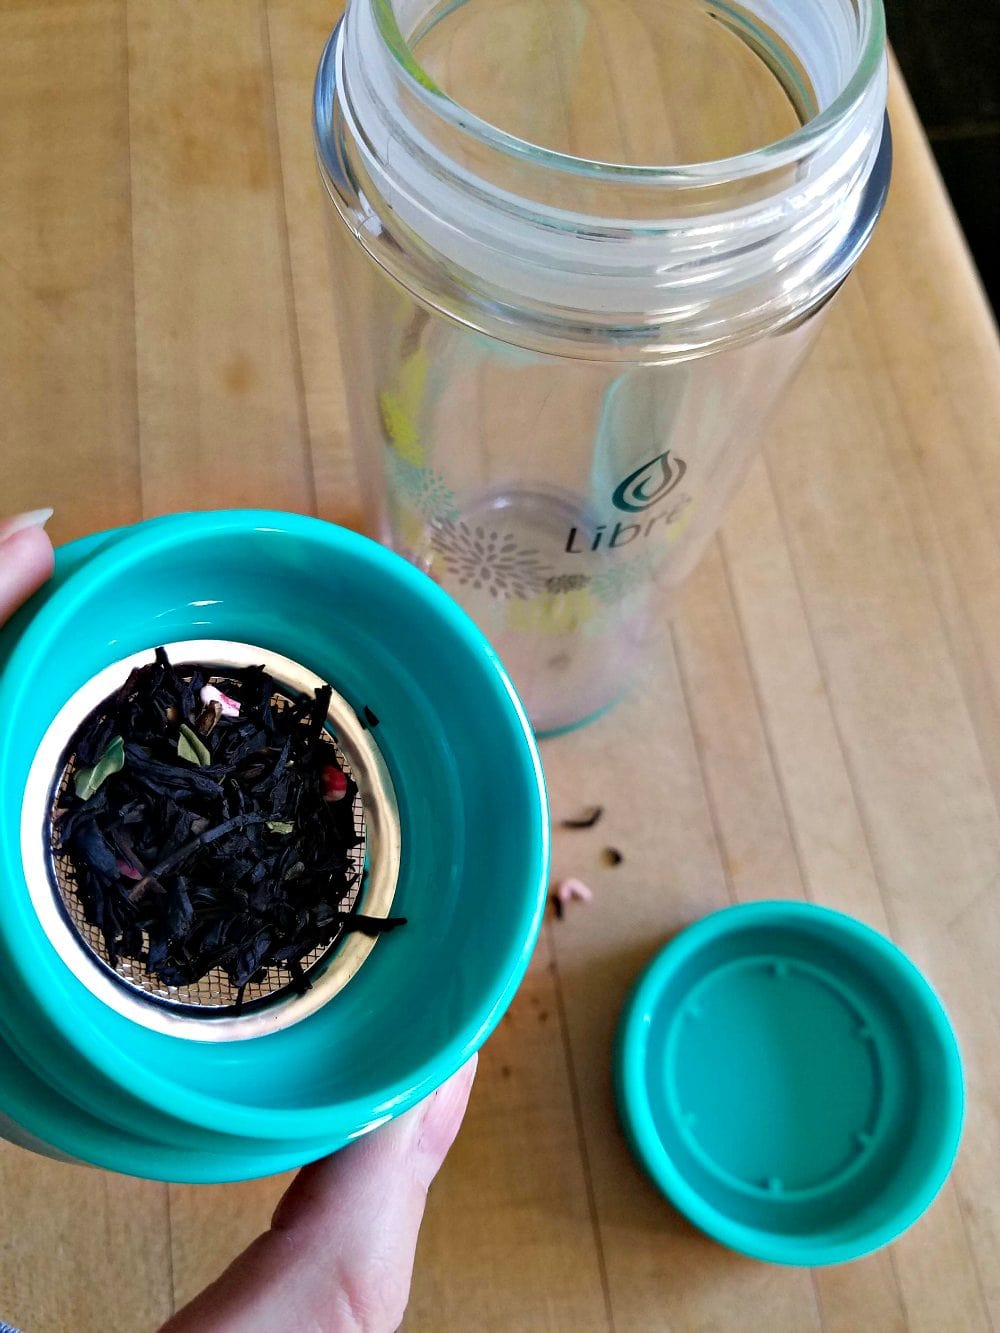 Loose leaf tea with a Libre tea glass mug